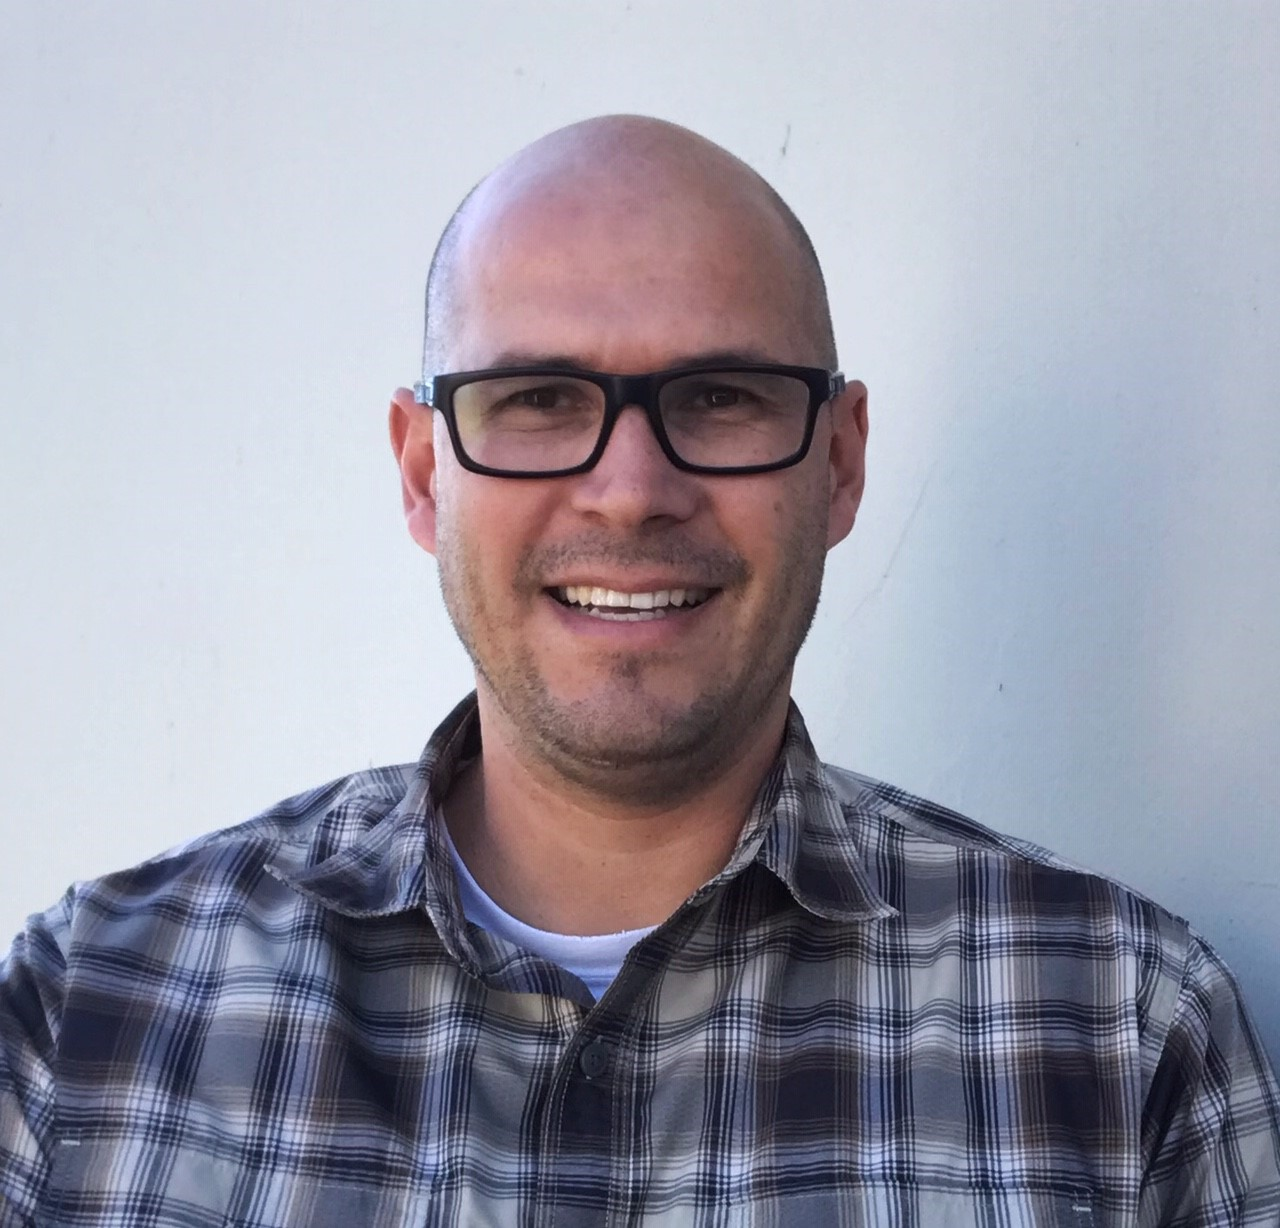 MULLEN TECHNOLOGIES HIRES GIL AMESSE TO LEAD ITS VEHICLE DIAGNOSTICS FUNCTIONS